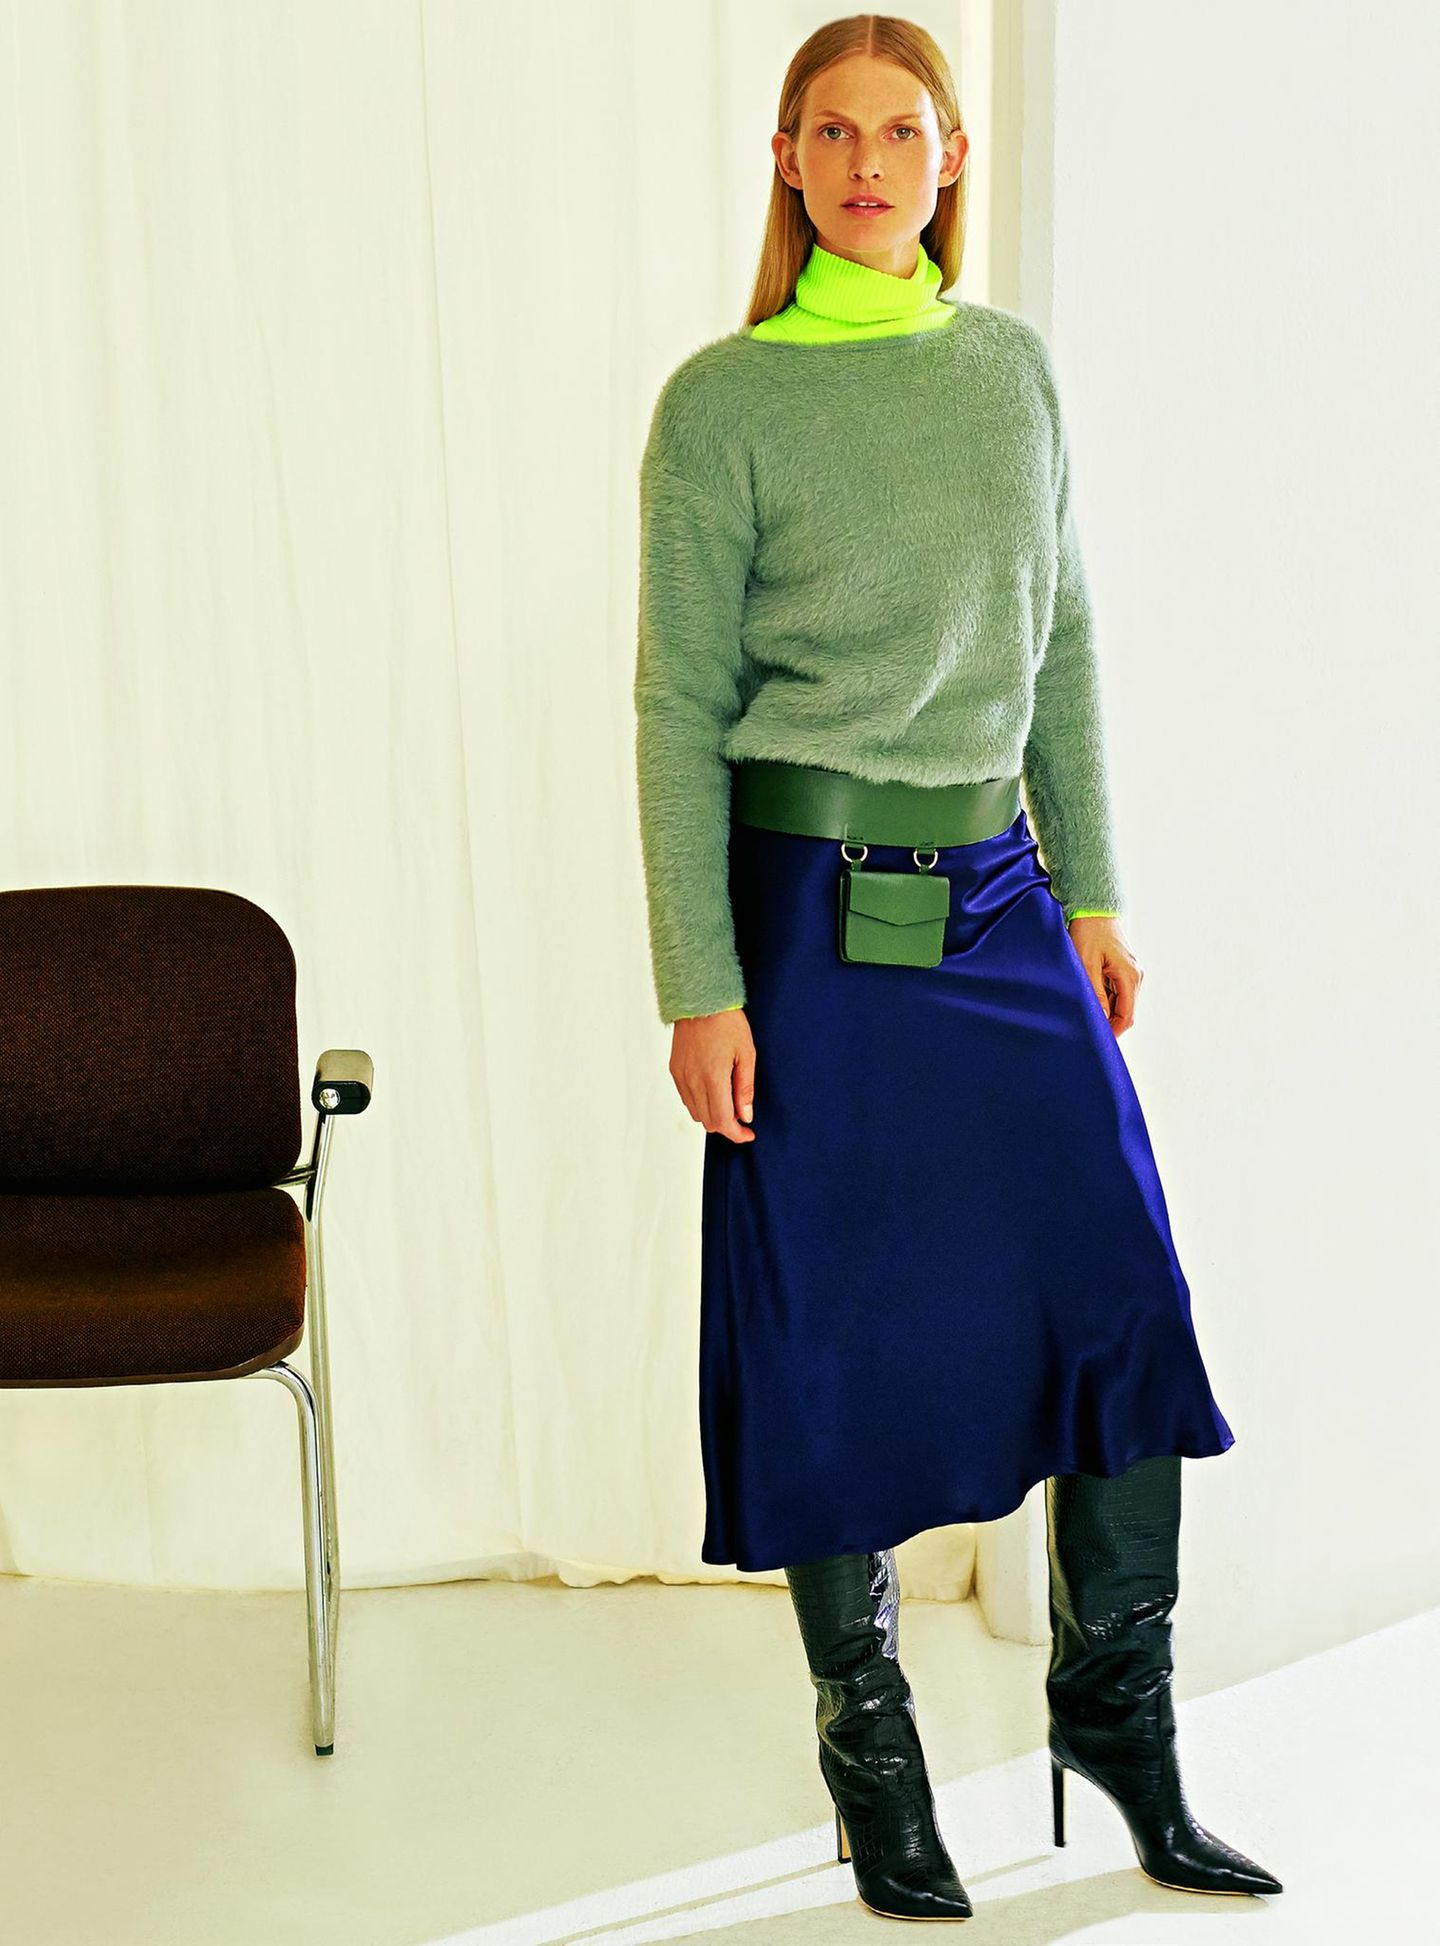 Business-Outfits 2020: Jobmode im Retro-Chic: Fell-Pullover zu Satinrock